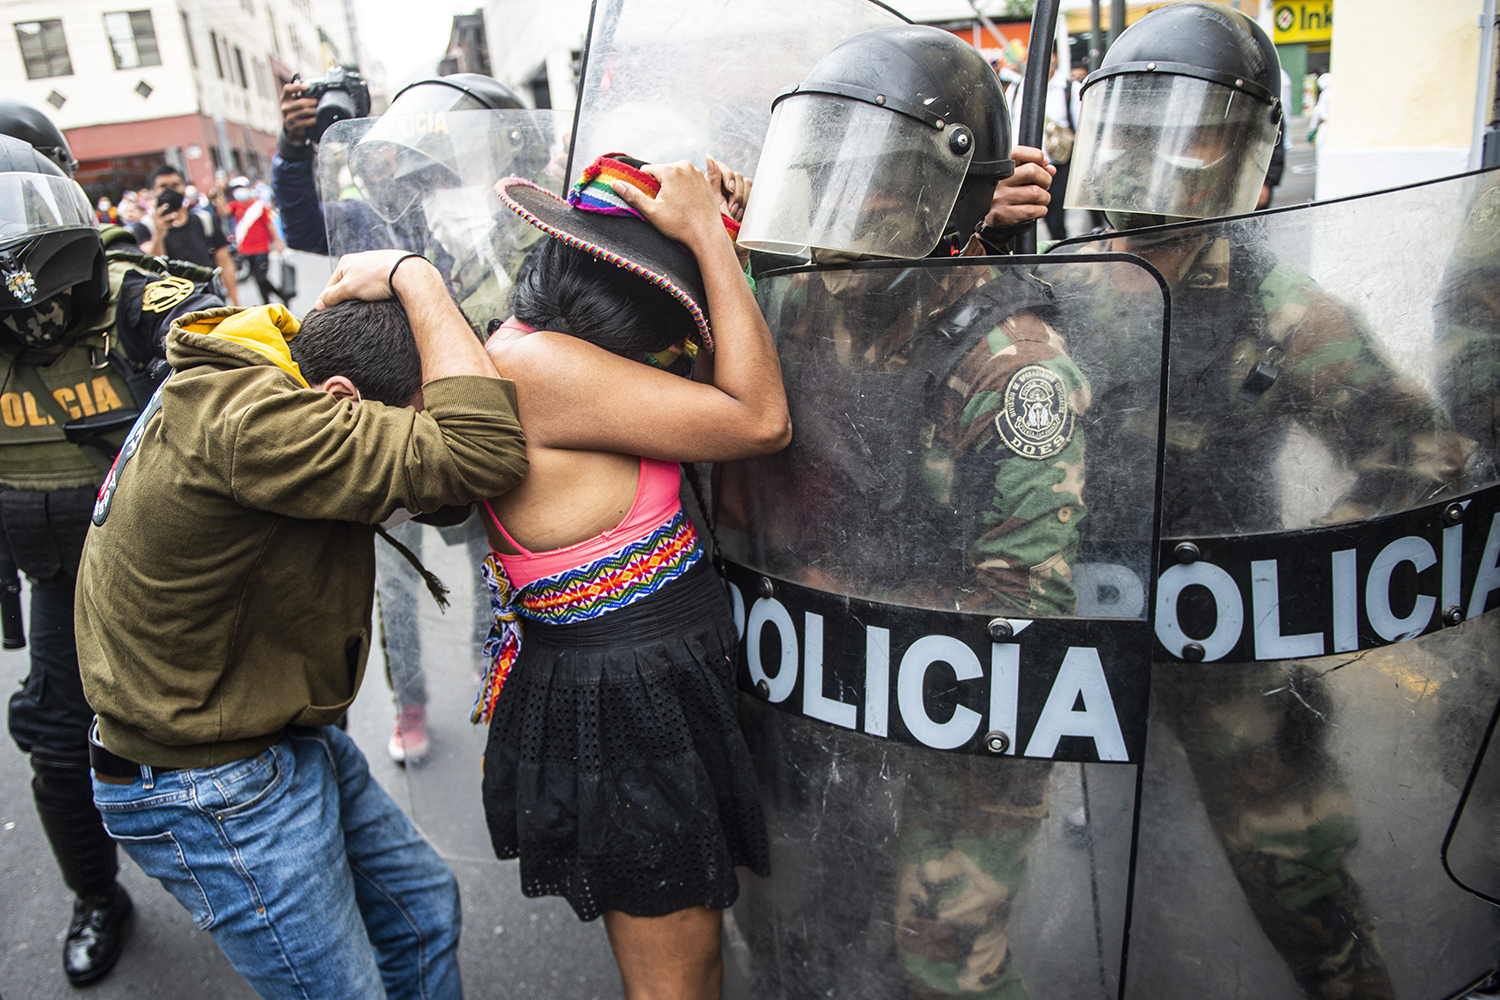 Supporters of ousted Peruvian President Martín Vizcarra, who was removed in an impeachment vote, demonstrate against the new government in Lima, Peru, on Nov. 10. ERNESTO BENAVIDES/AFP via Getty Images